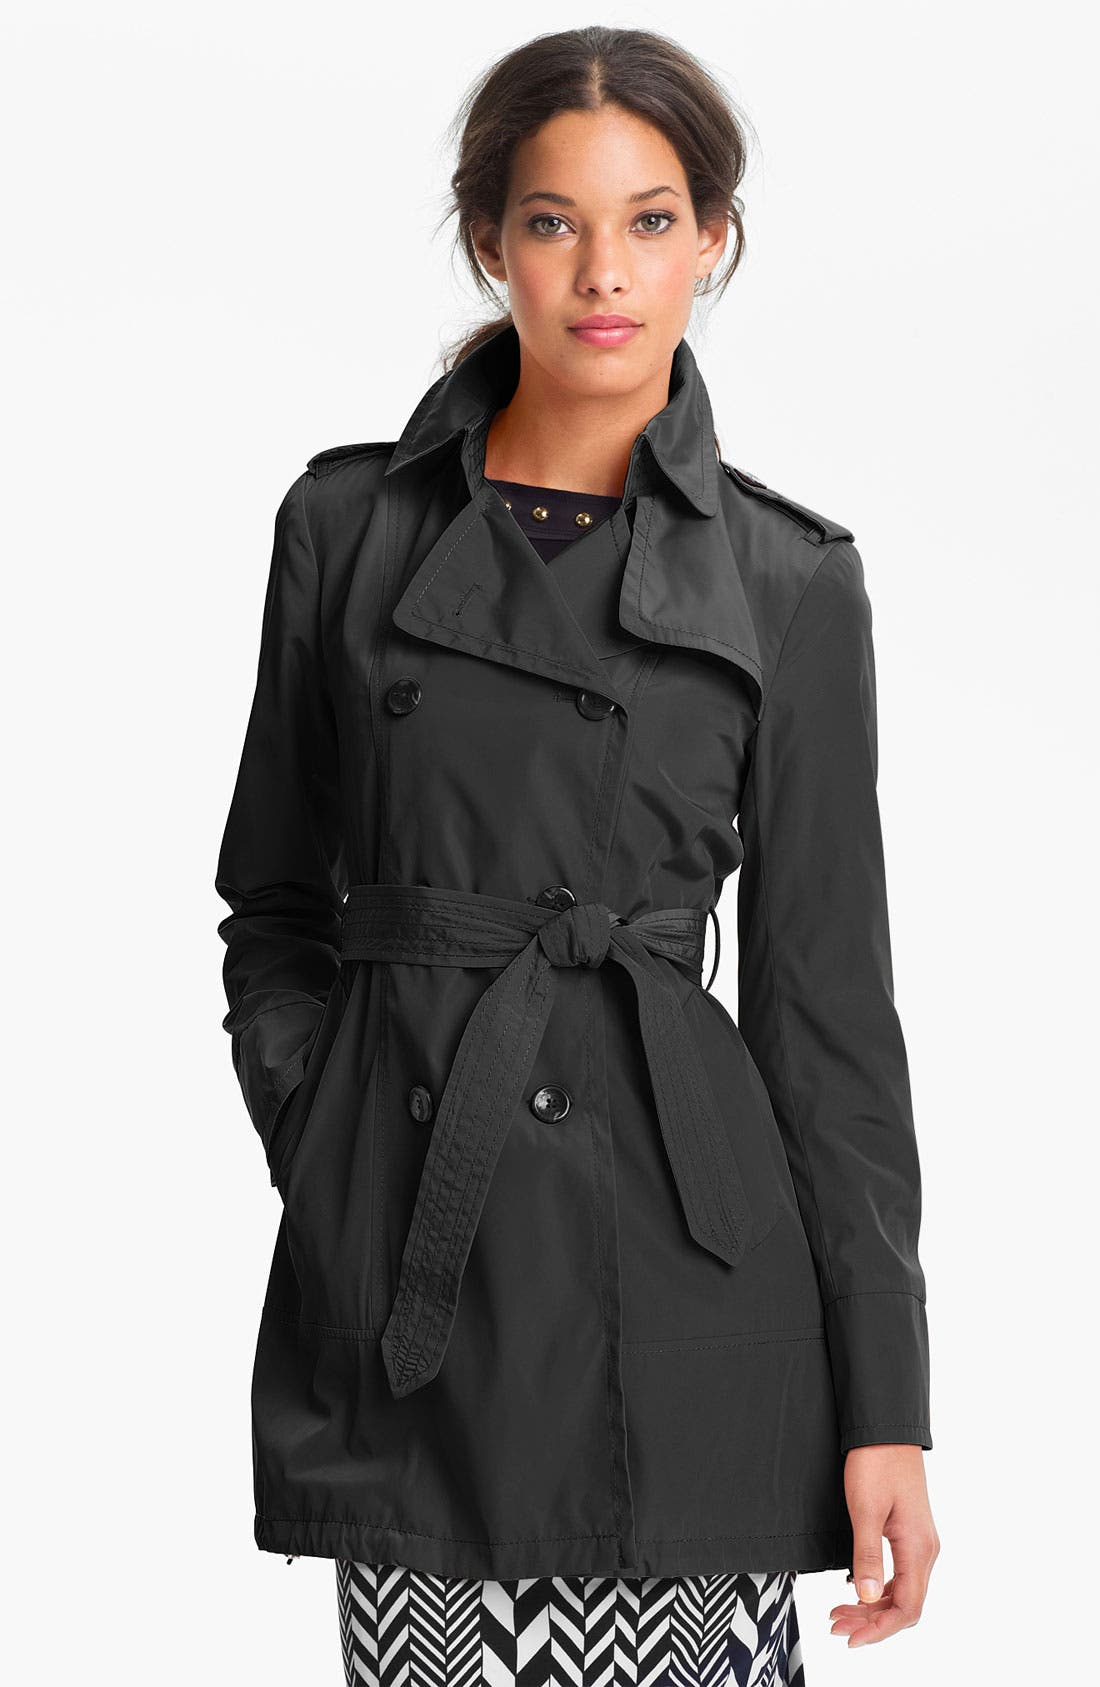 Main Image - Vince Camuto 'Heidi' Double Breasted Trench Coat